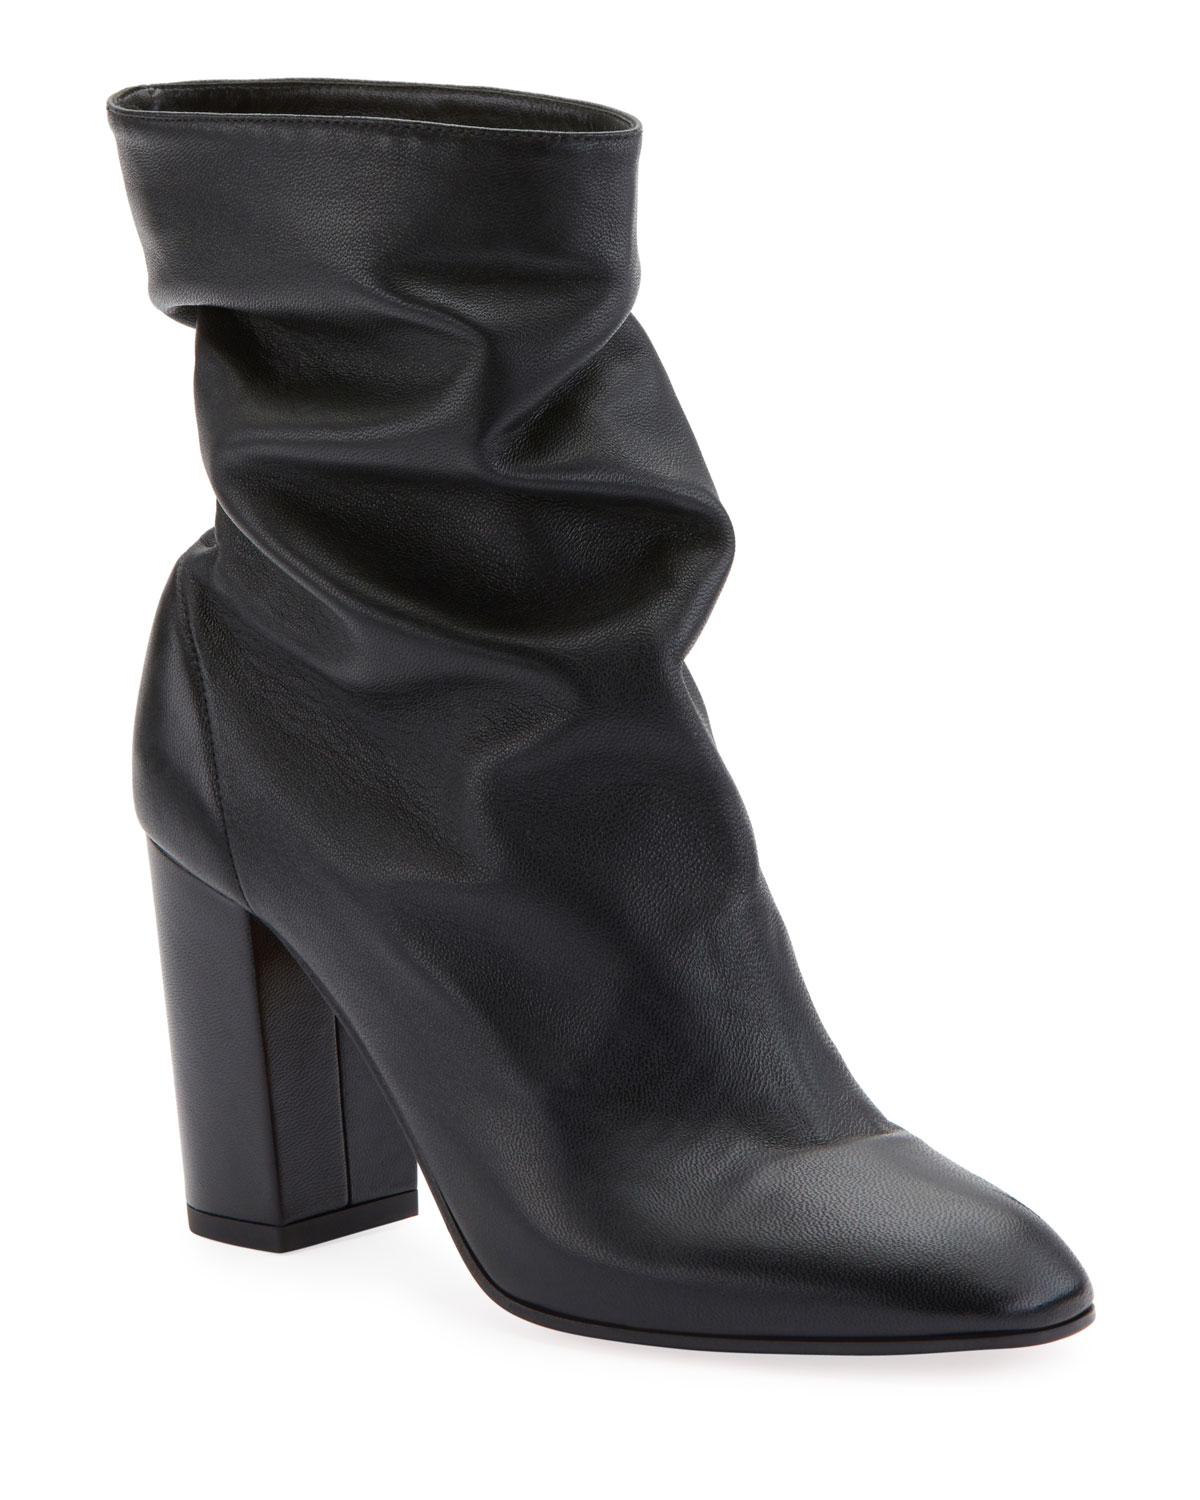 AQUAZZURA BOOGIE SCRUNCH LEATHER BOOTIE